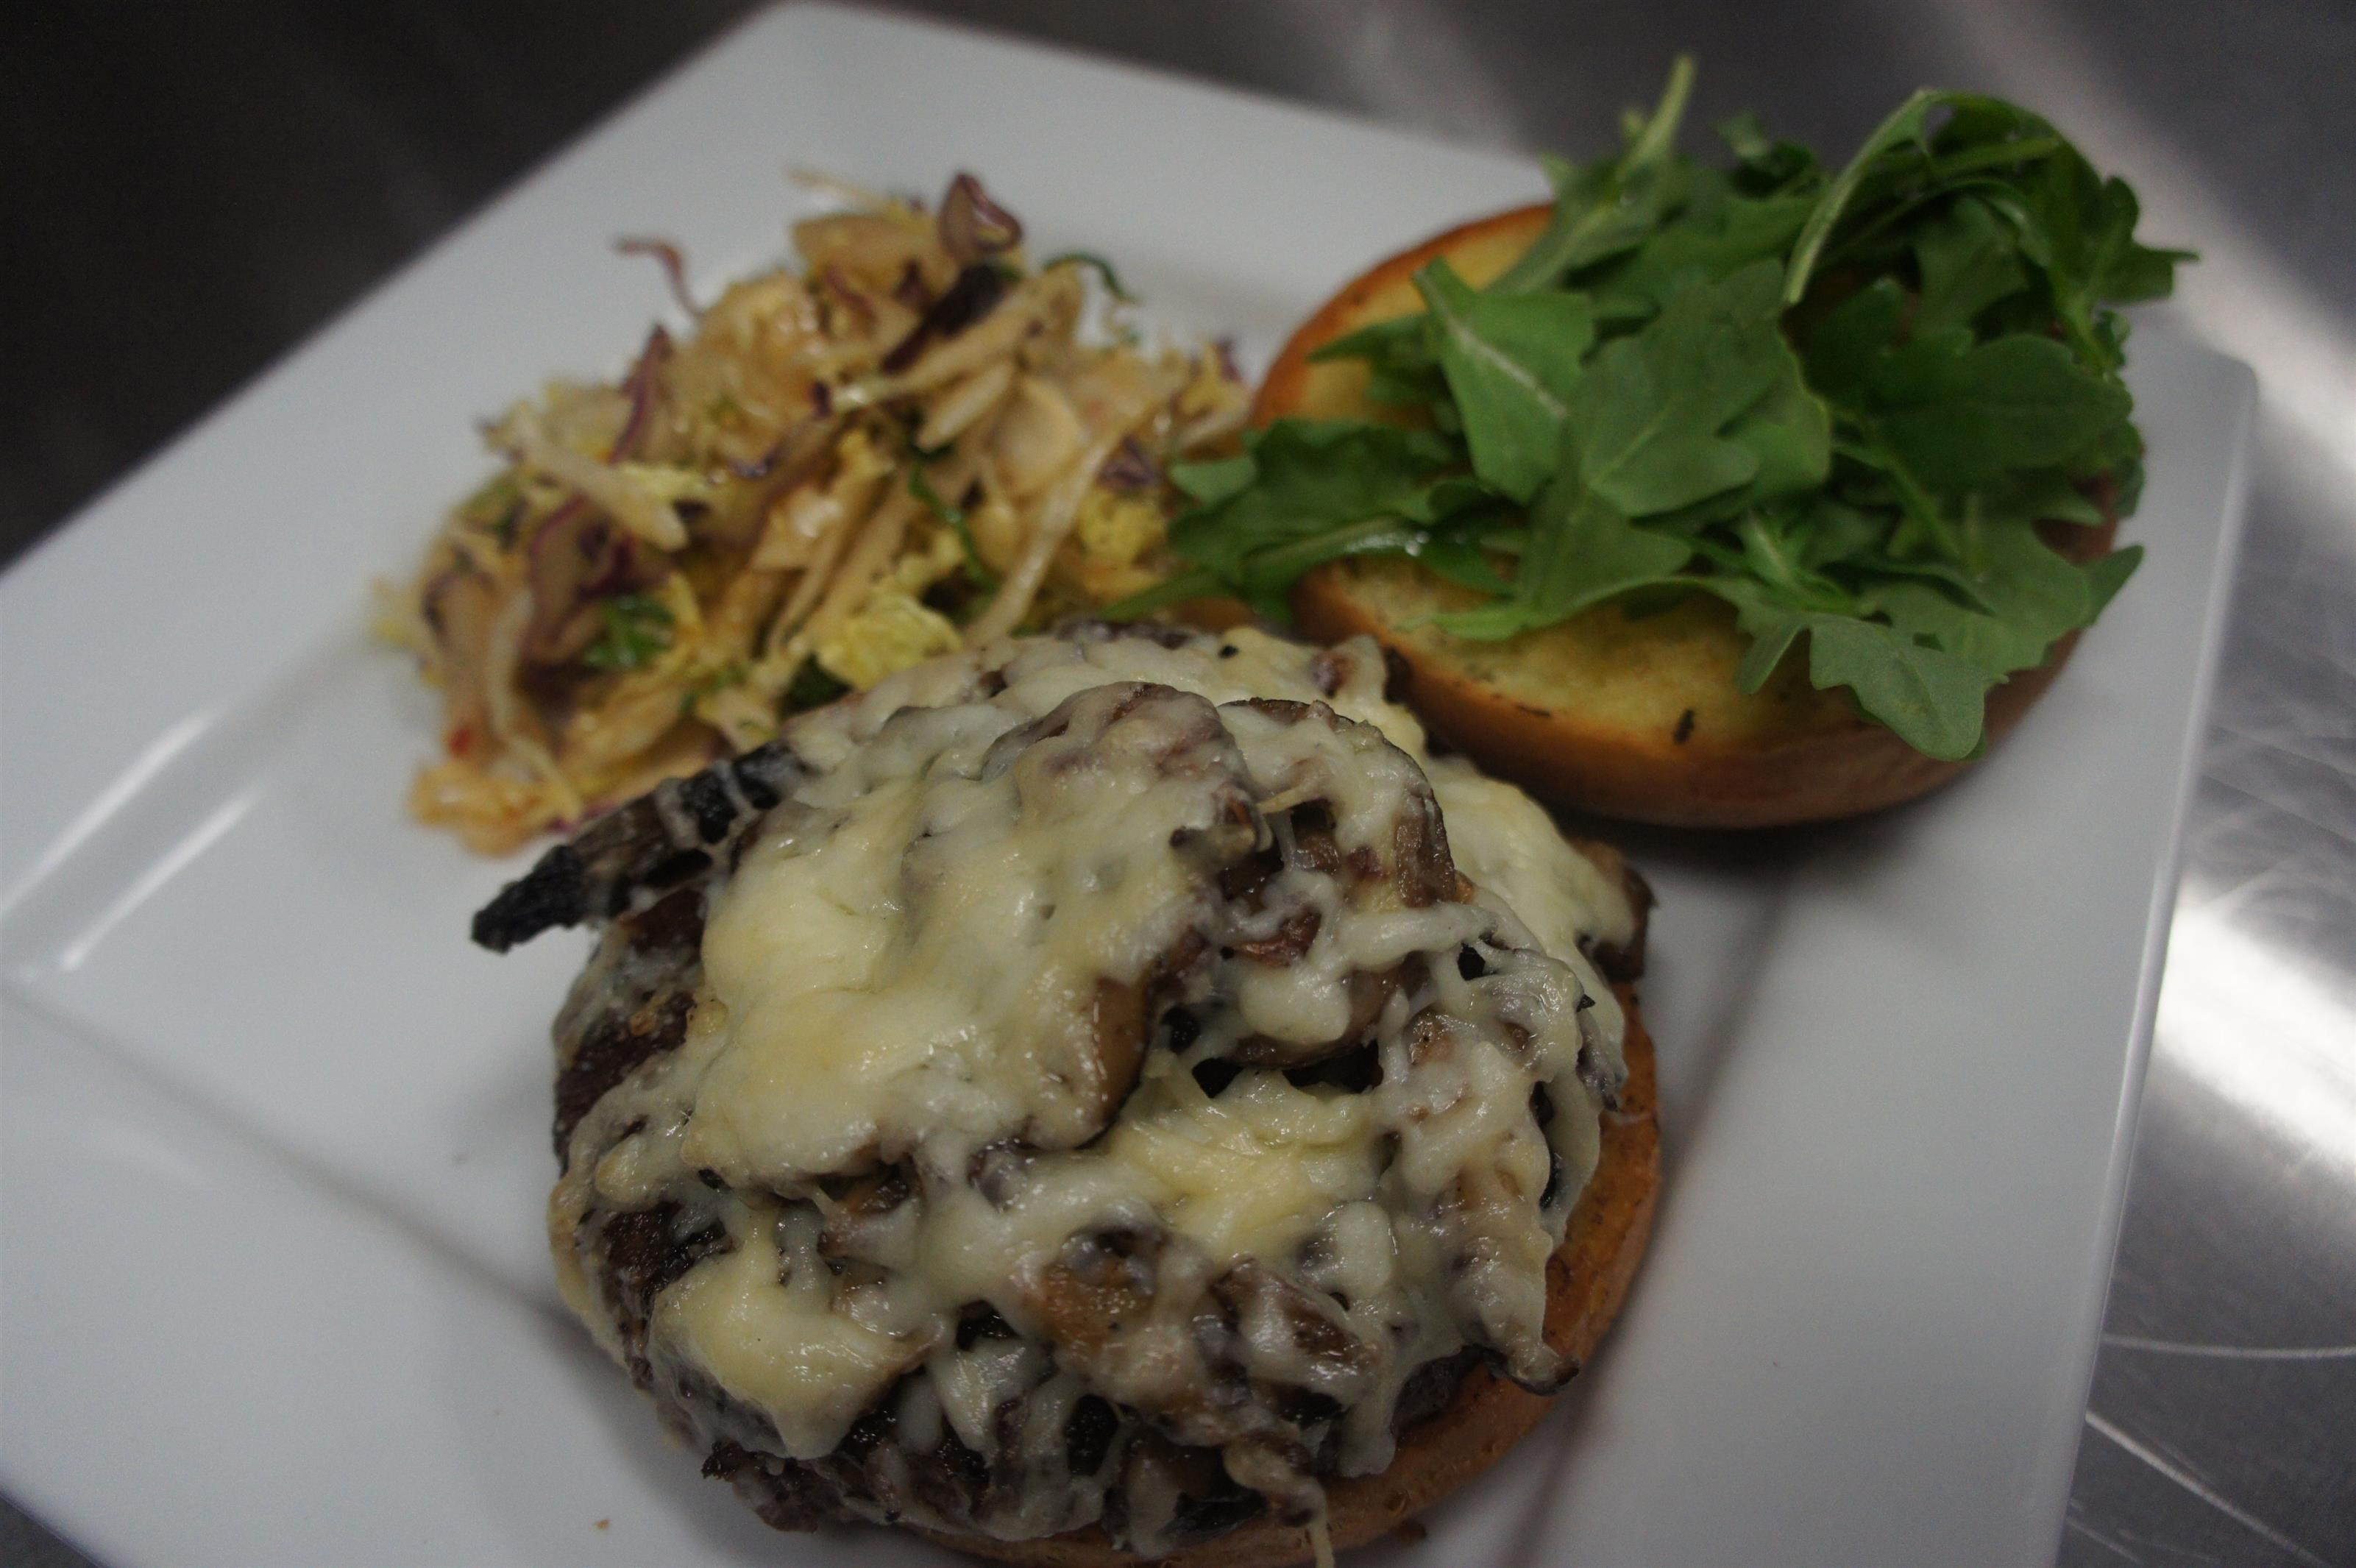 Cheese burger served open faced with sauteed mushrooms and melted cheese on one side and coriander leaves on the other side. Served in a white plate with a side of slaw